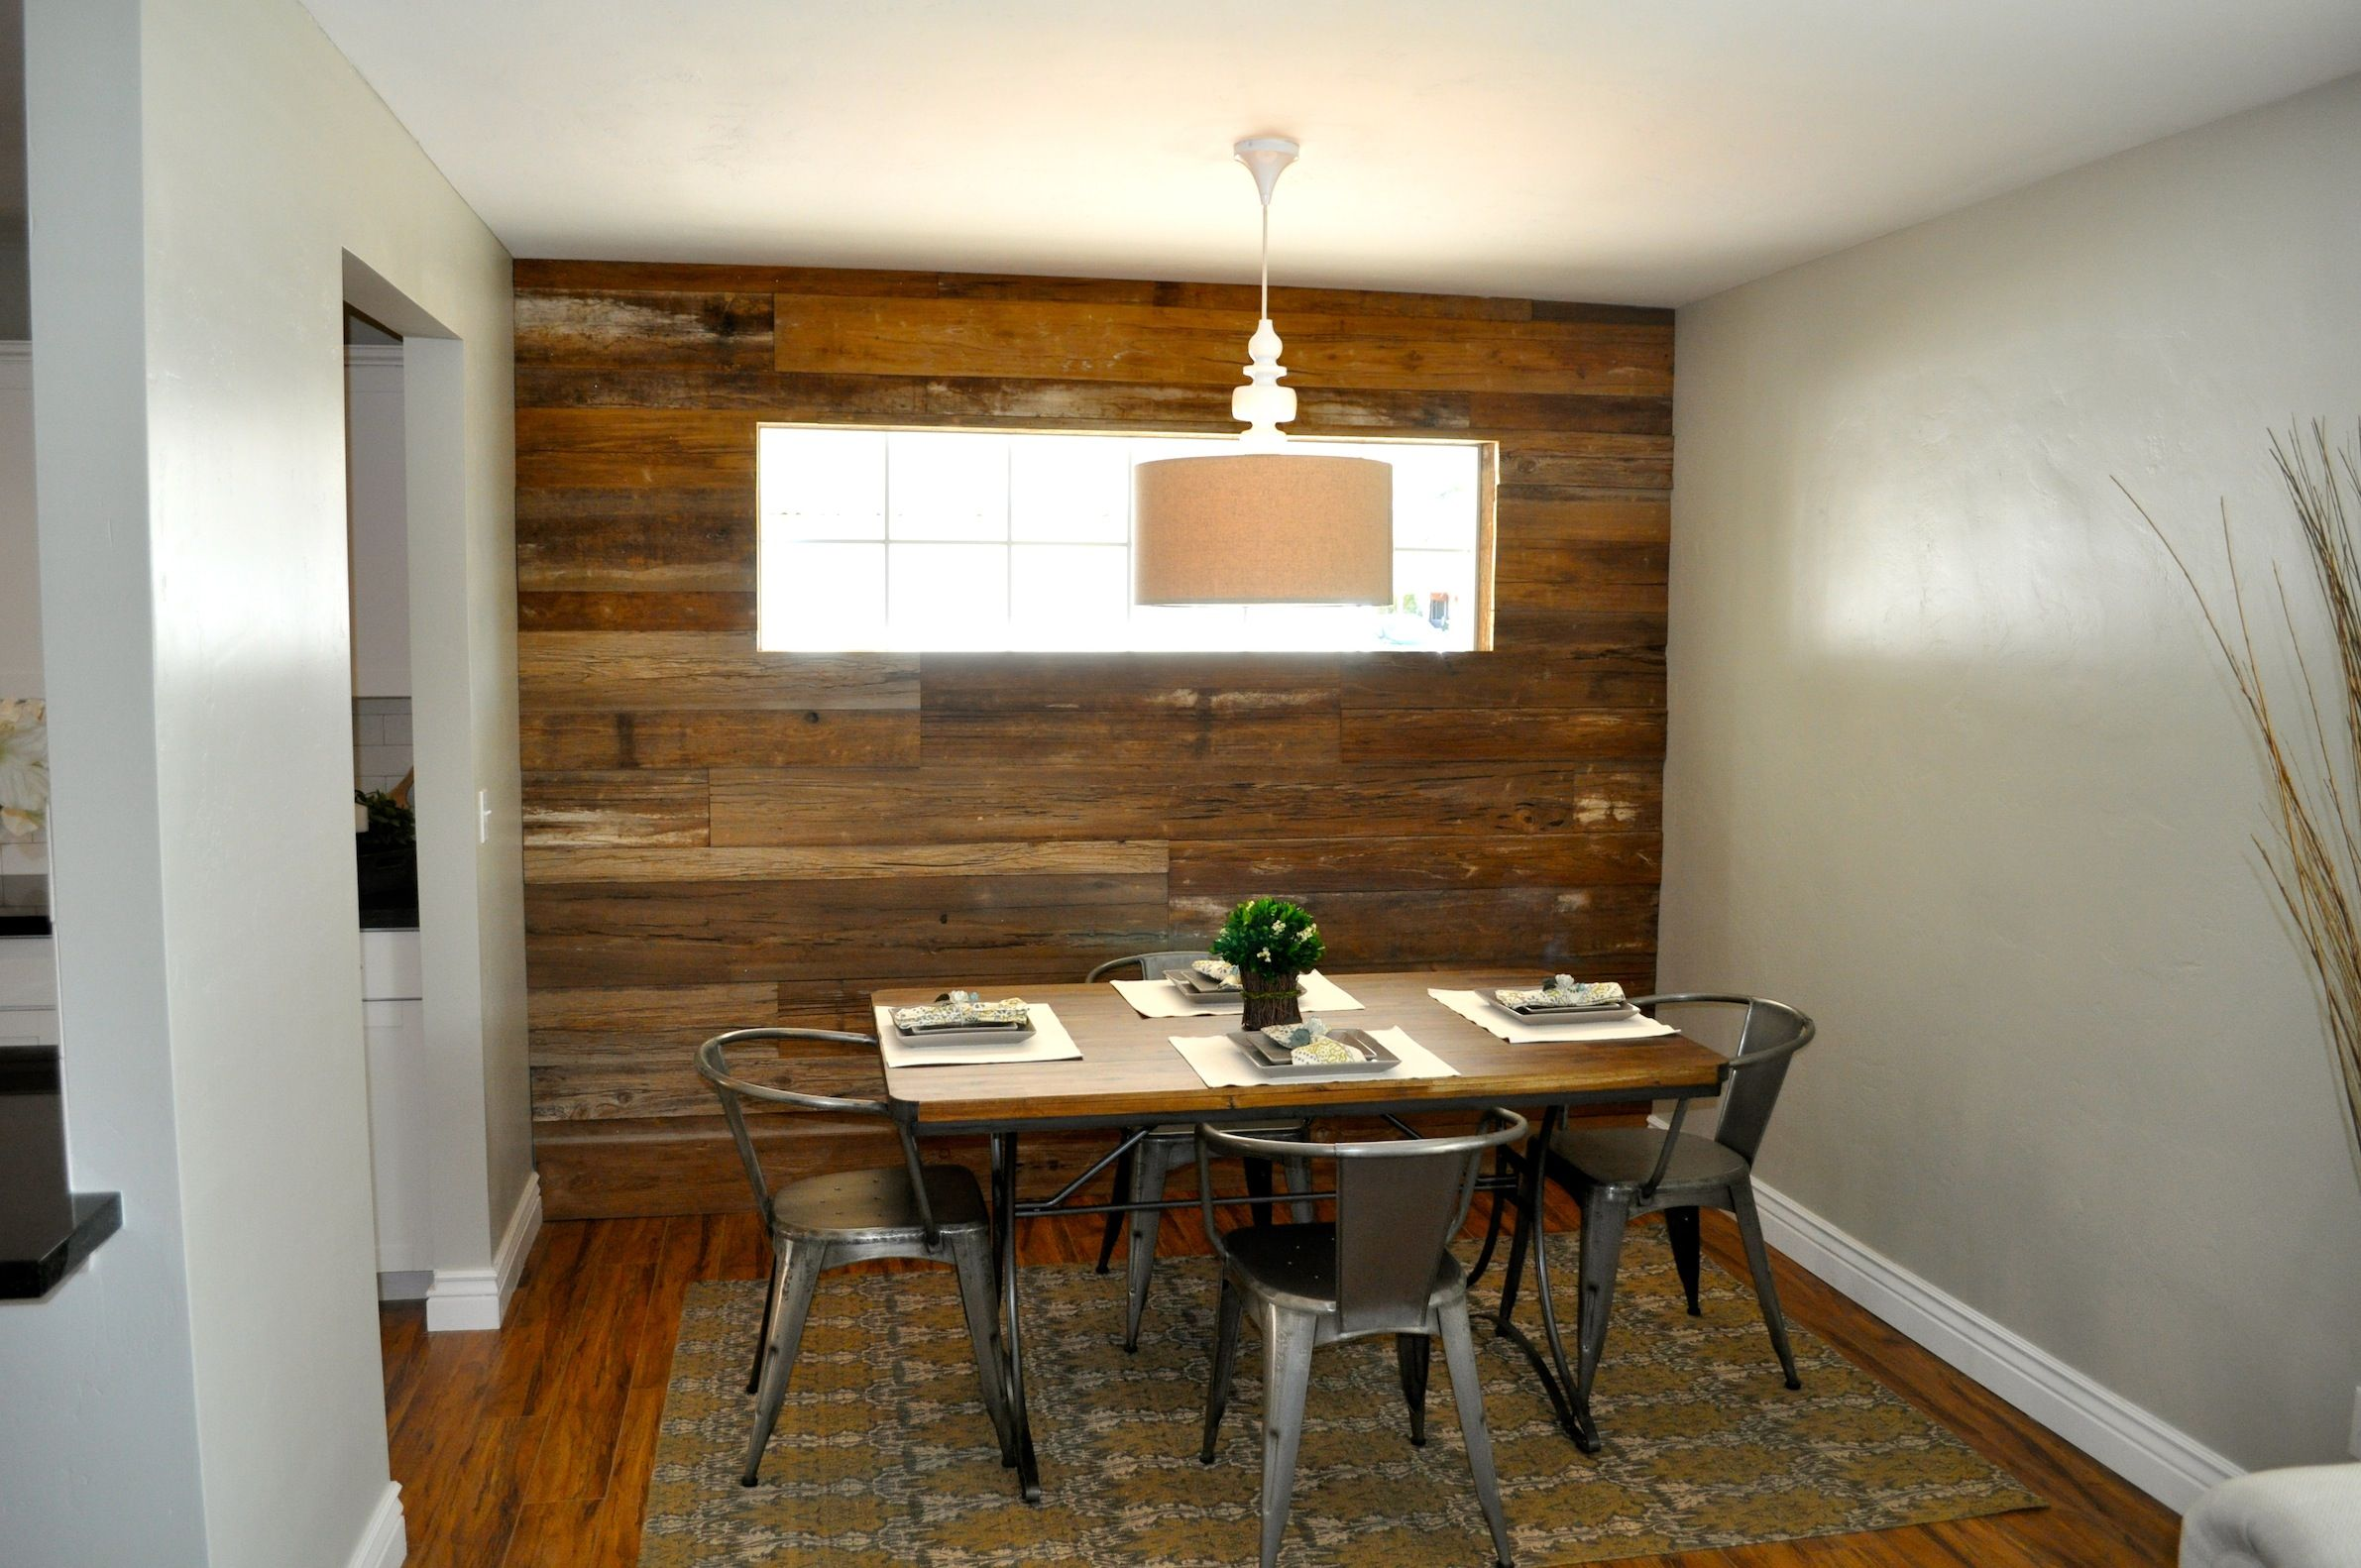 Barn wood accent wall by Rafterhouse New House